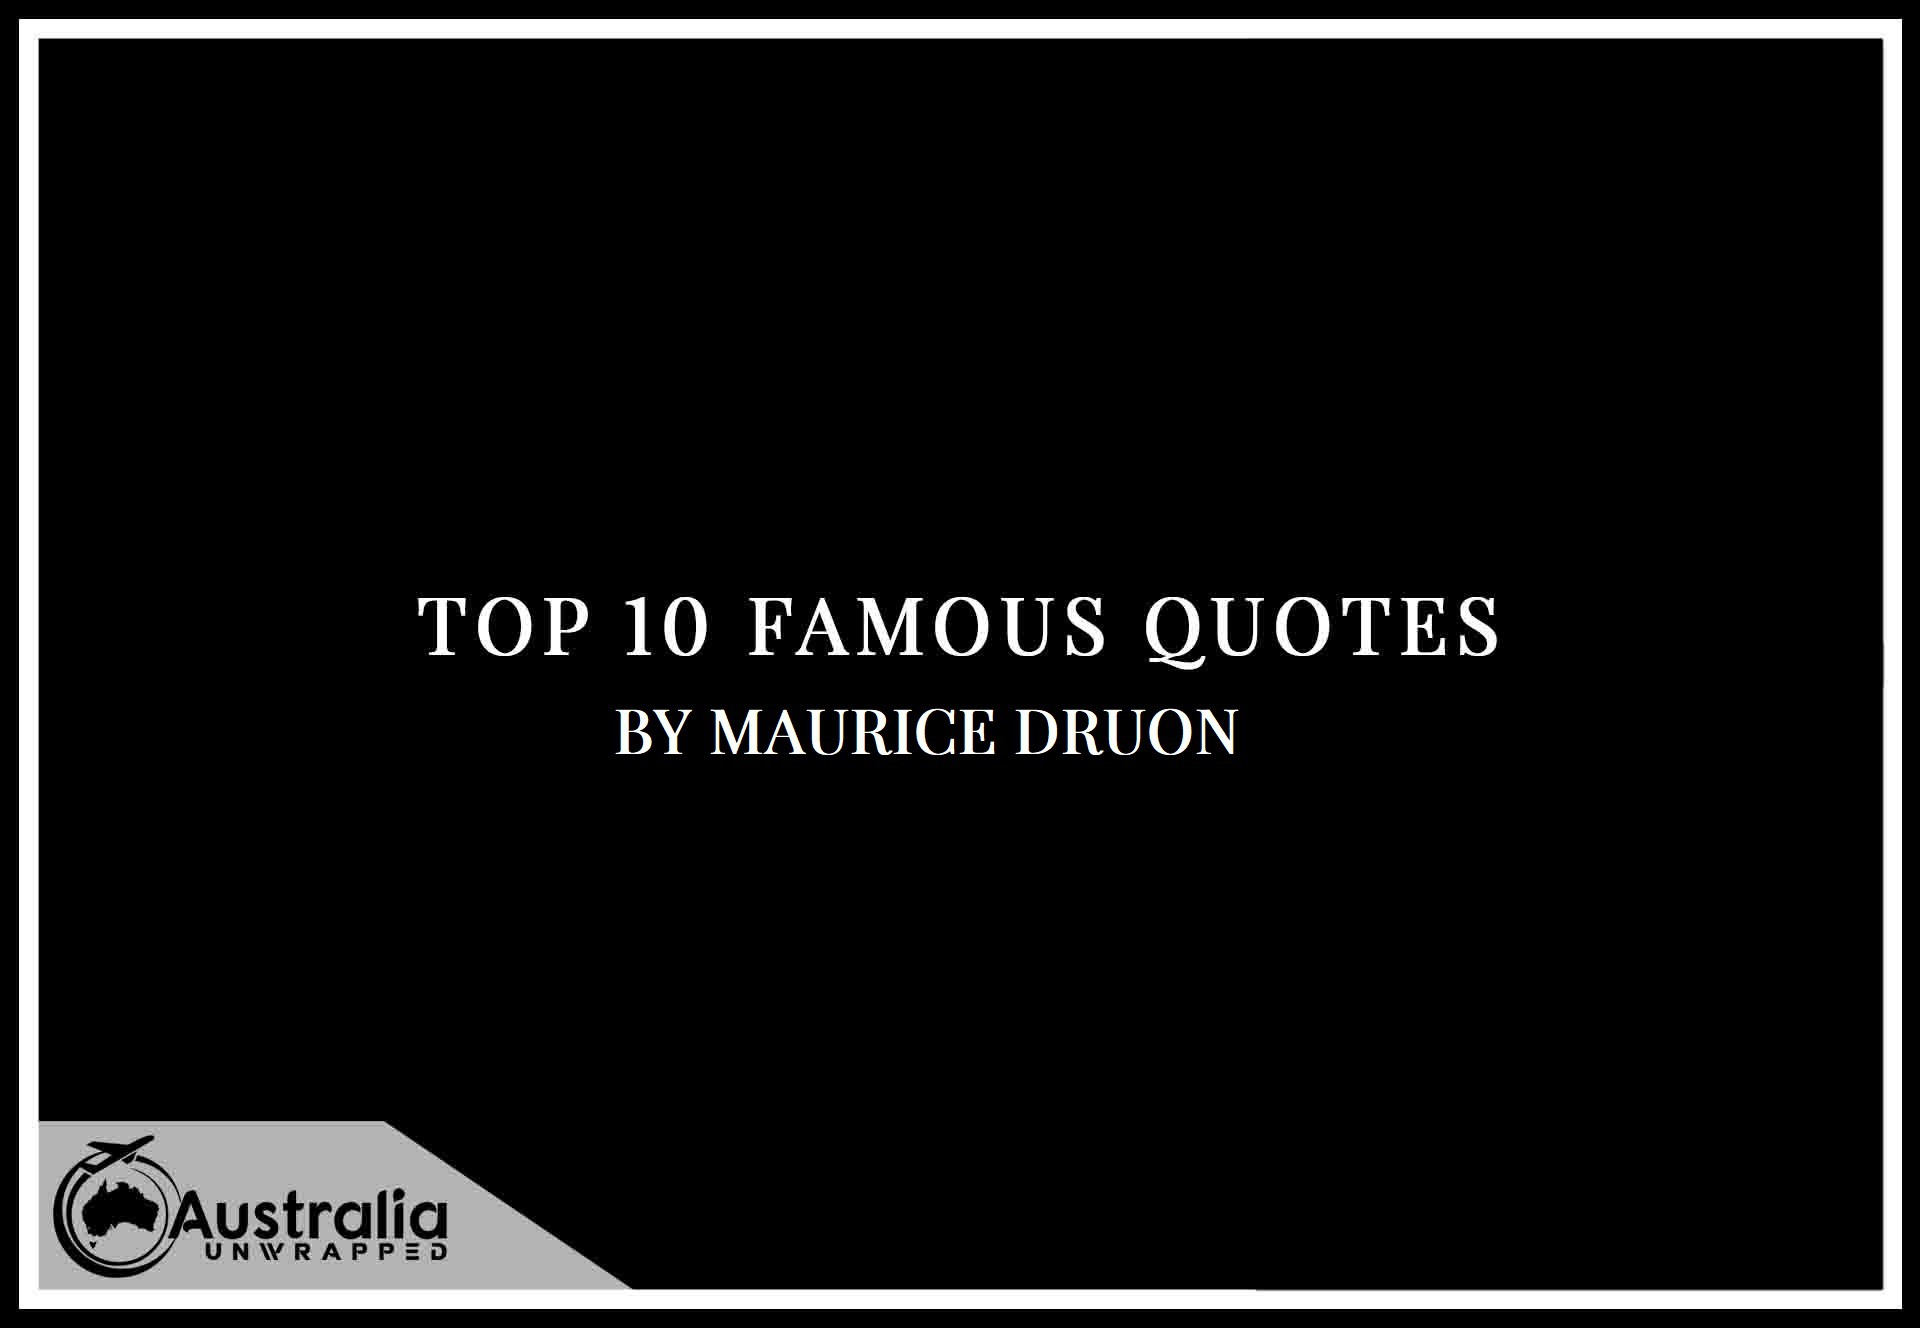 Top 10 Famous Quotes by Author Maurice Druon